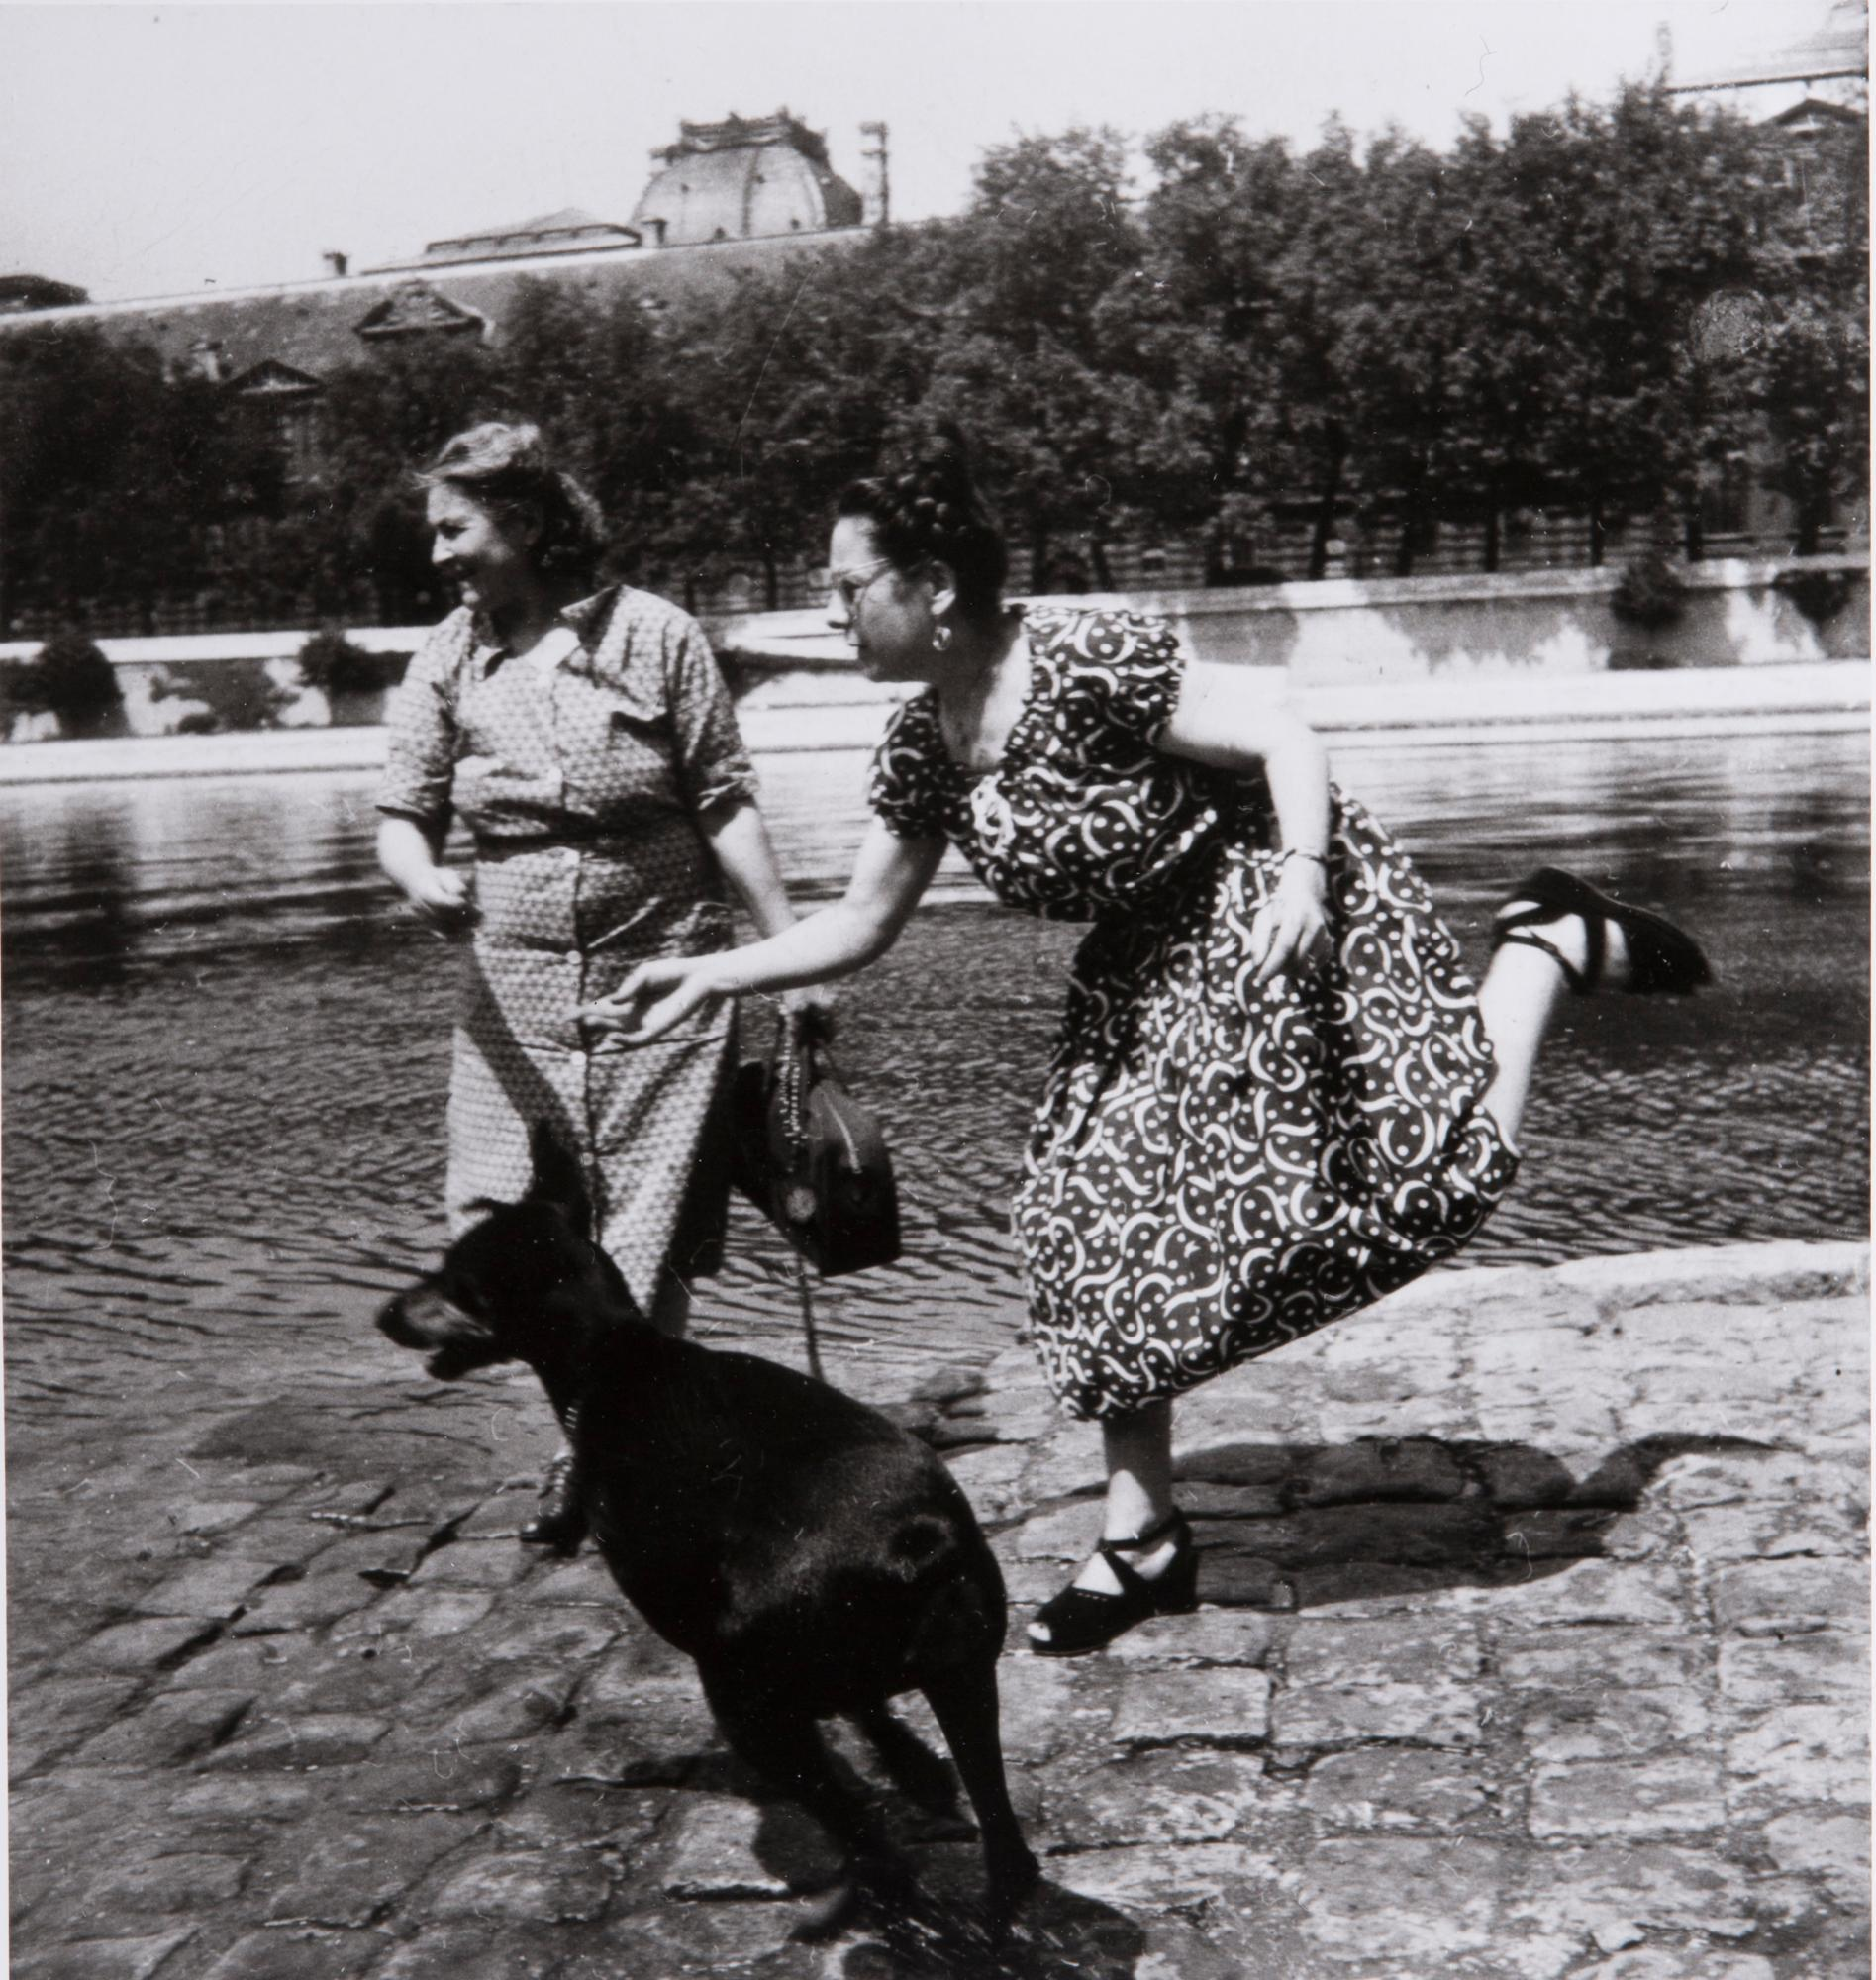 Paris (2 women, black dog)